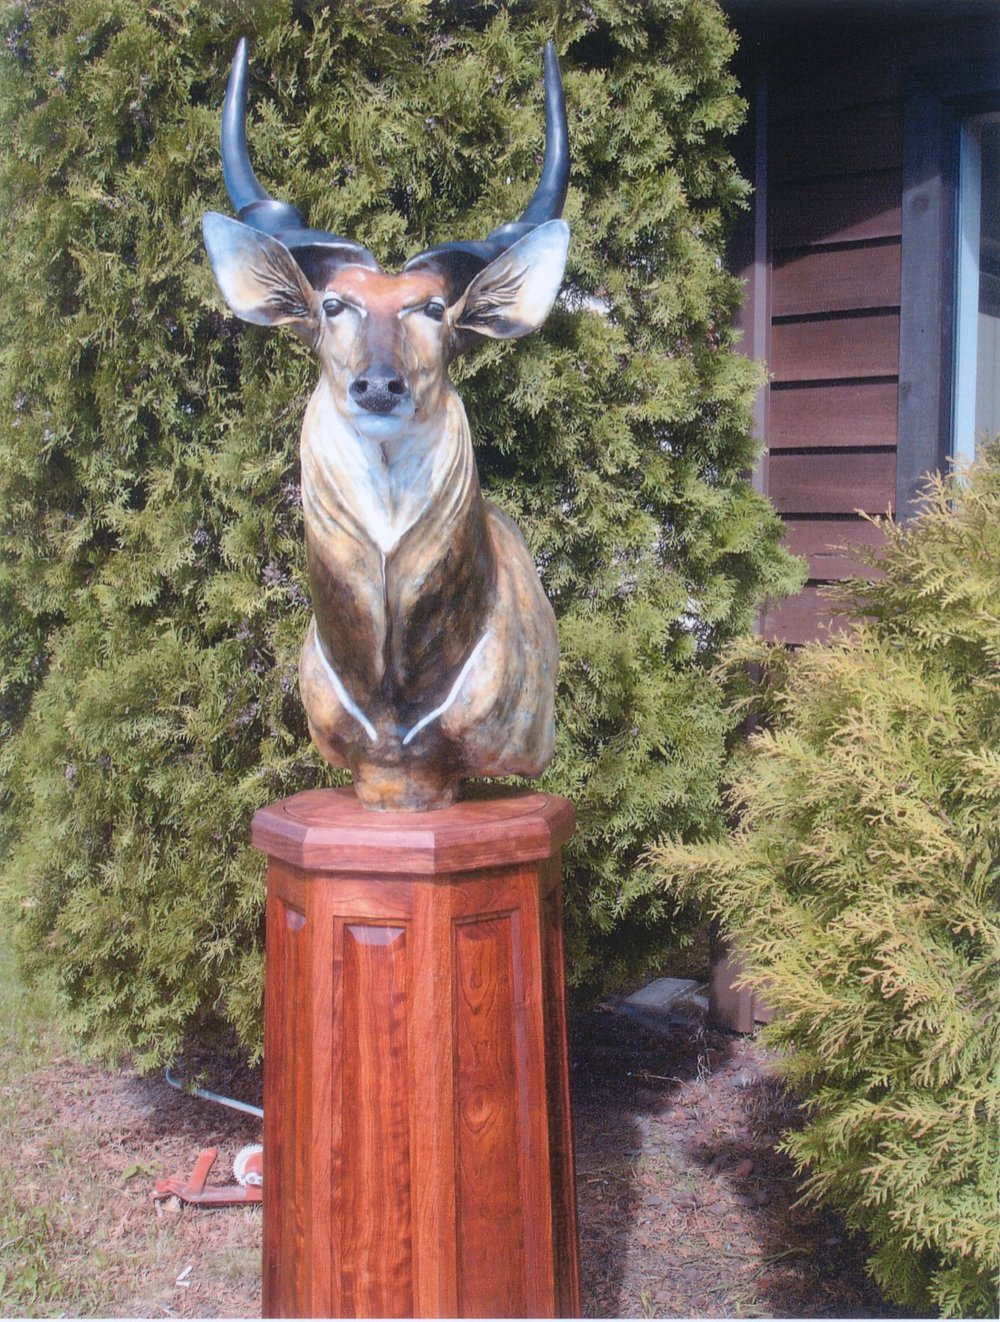 "Lord Derby 22""L 36""H 16""WPedestal: 38""H 17""W - Babinga Wood - ed./18Available without pedestal upon request. - Wildlife Bronze Sculpture"